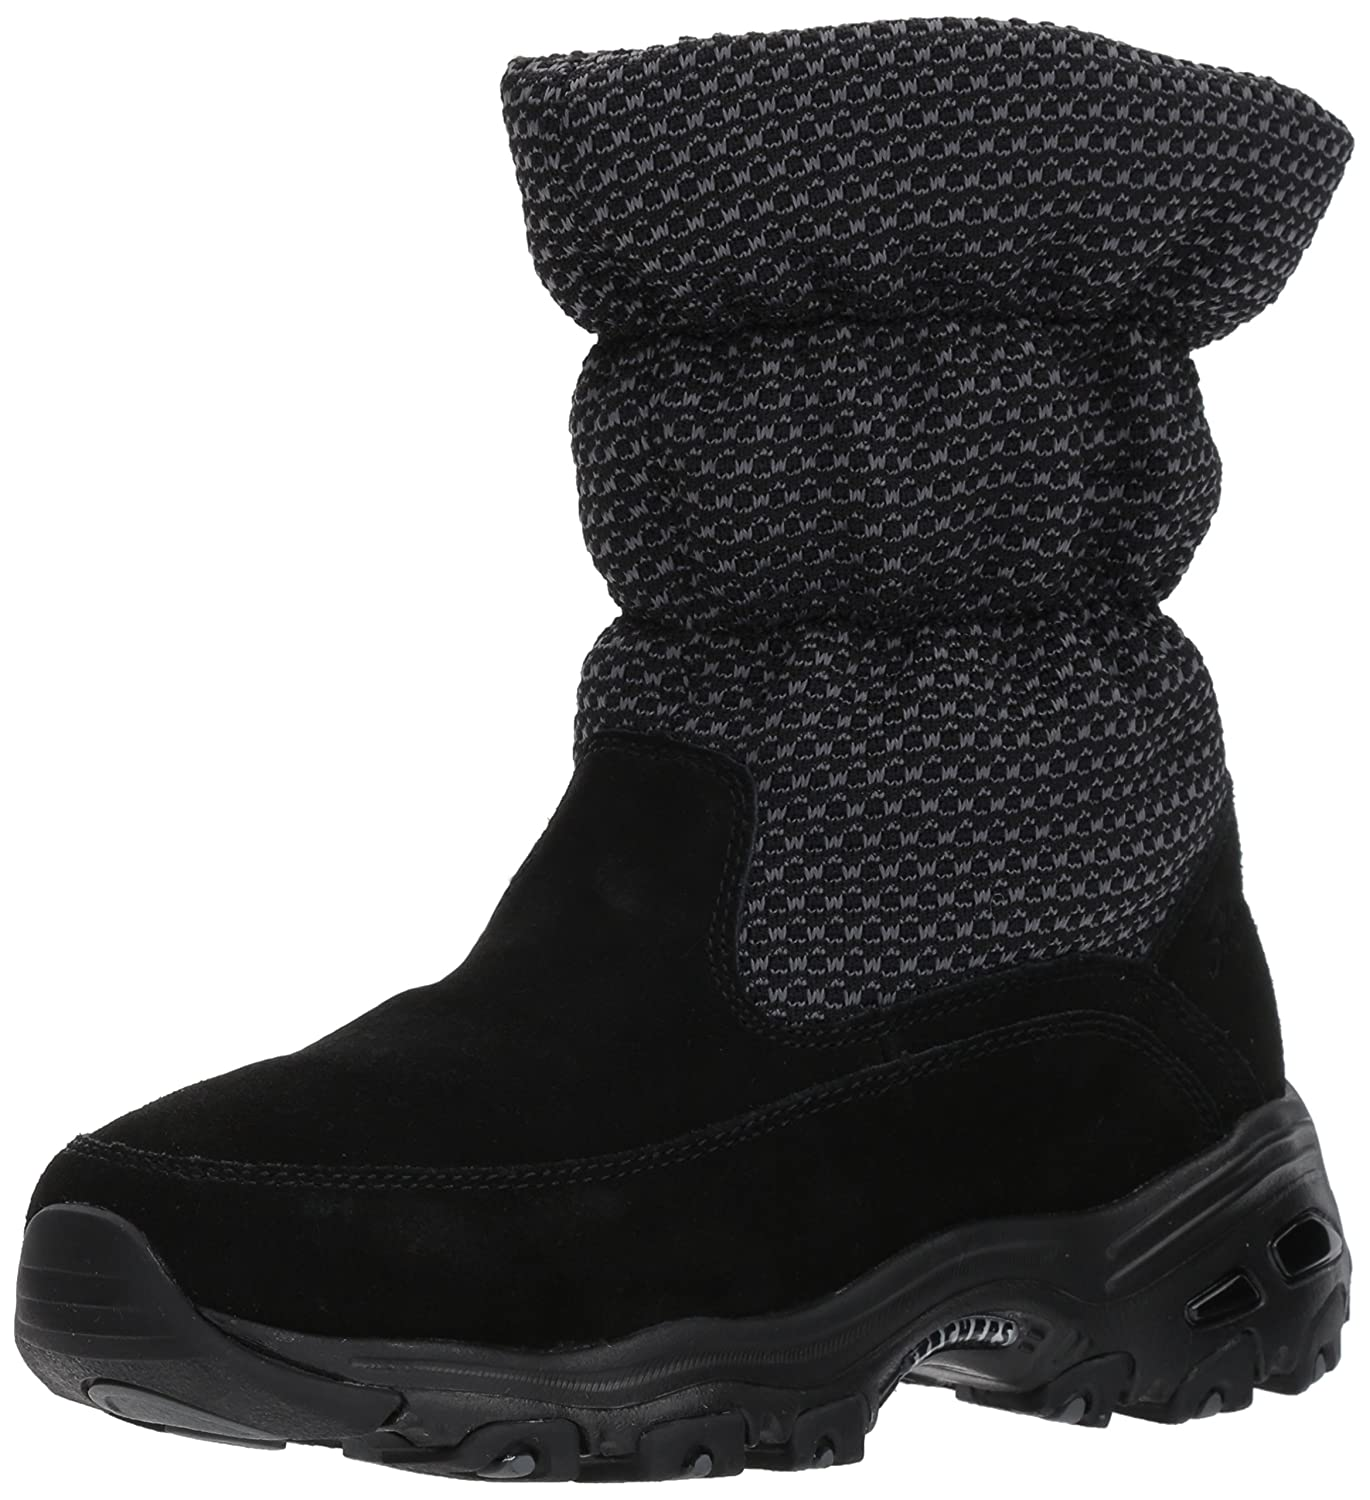 Skechers Women's D'Lites Winter Boot B06XGP9PLF 6.5 B(M) US|Black